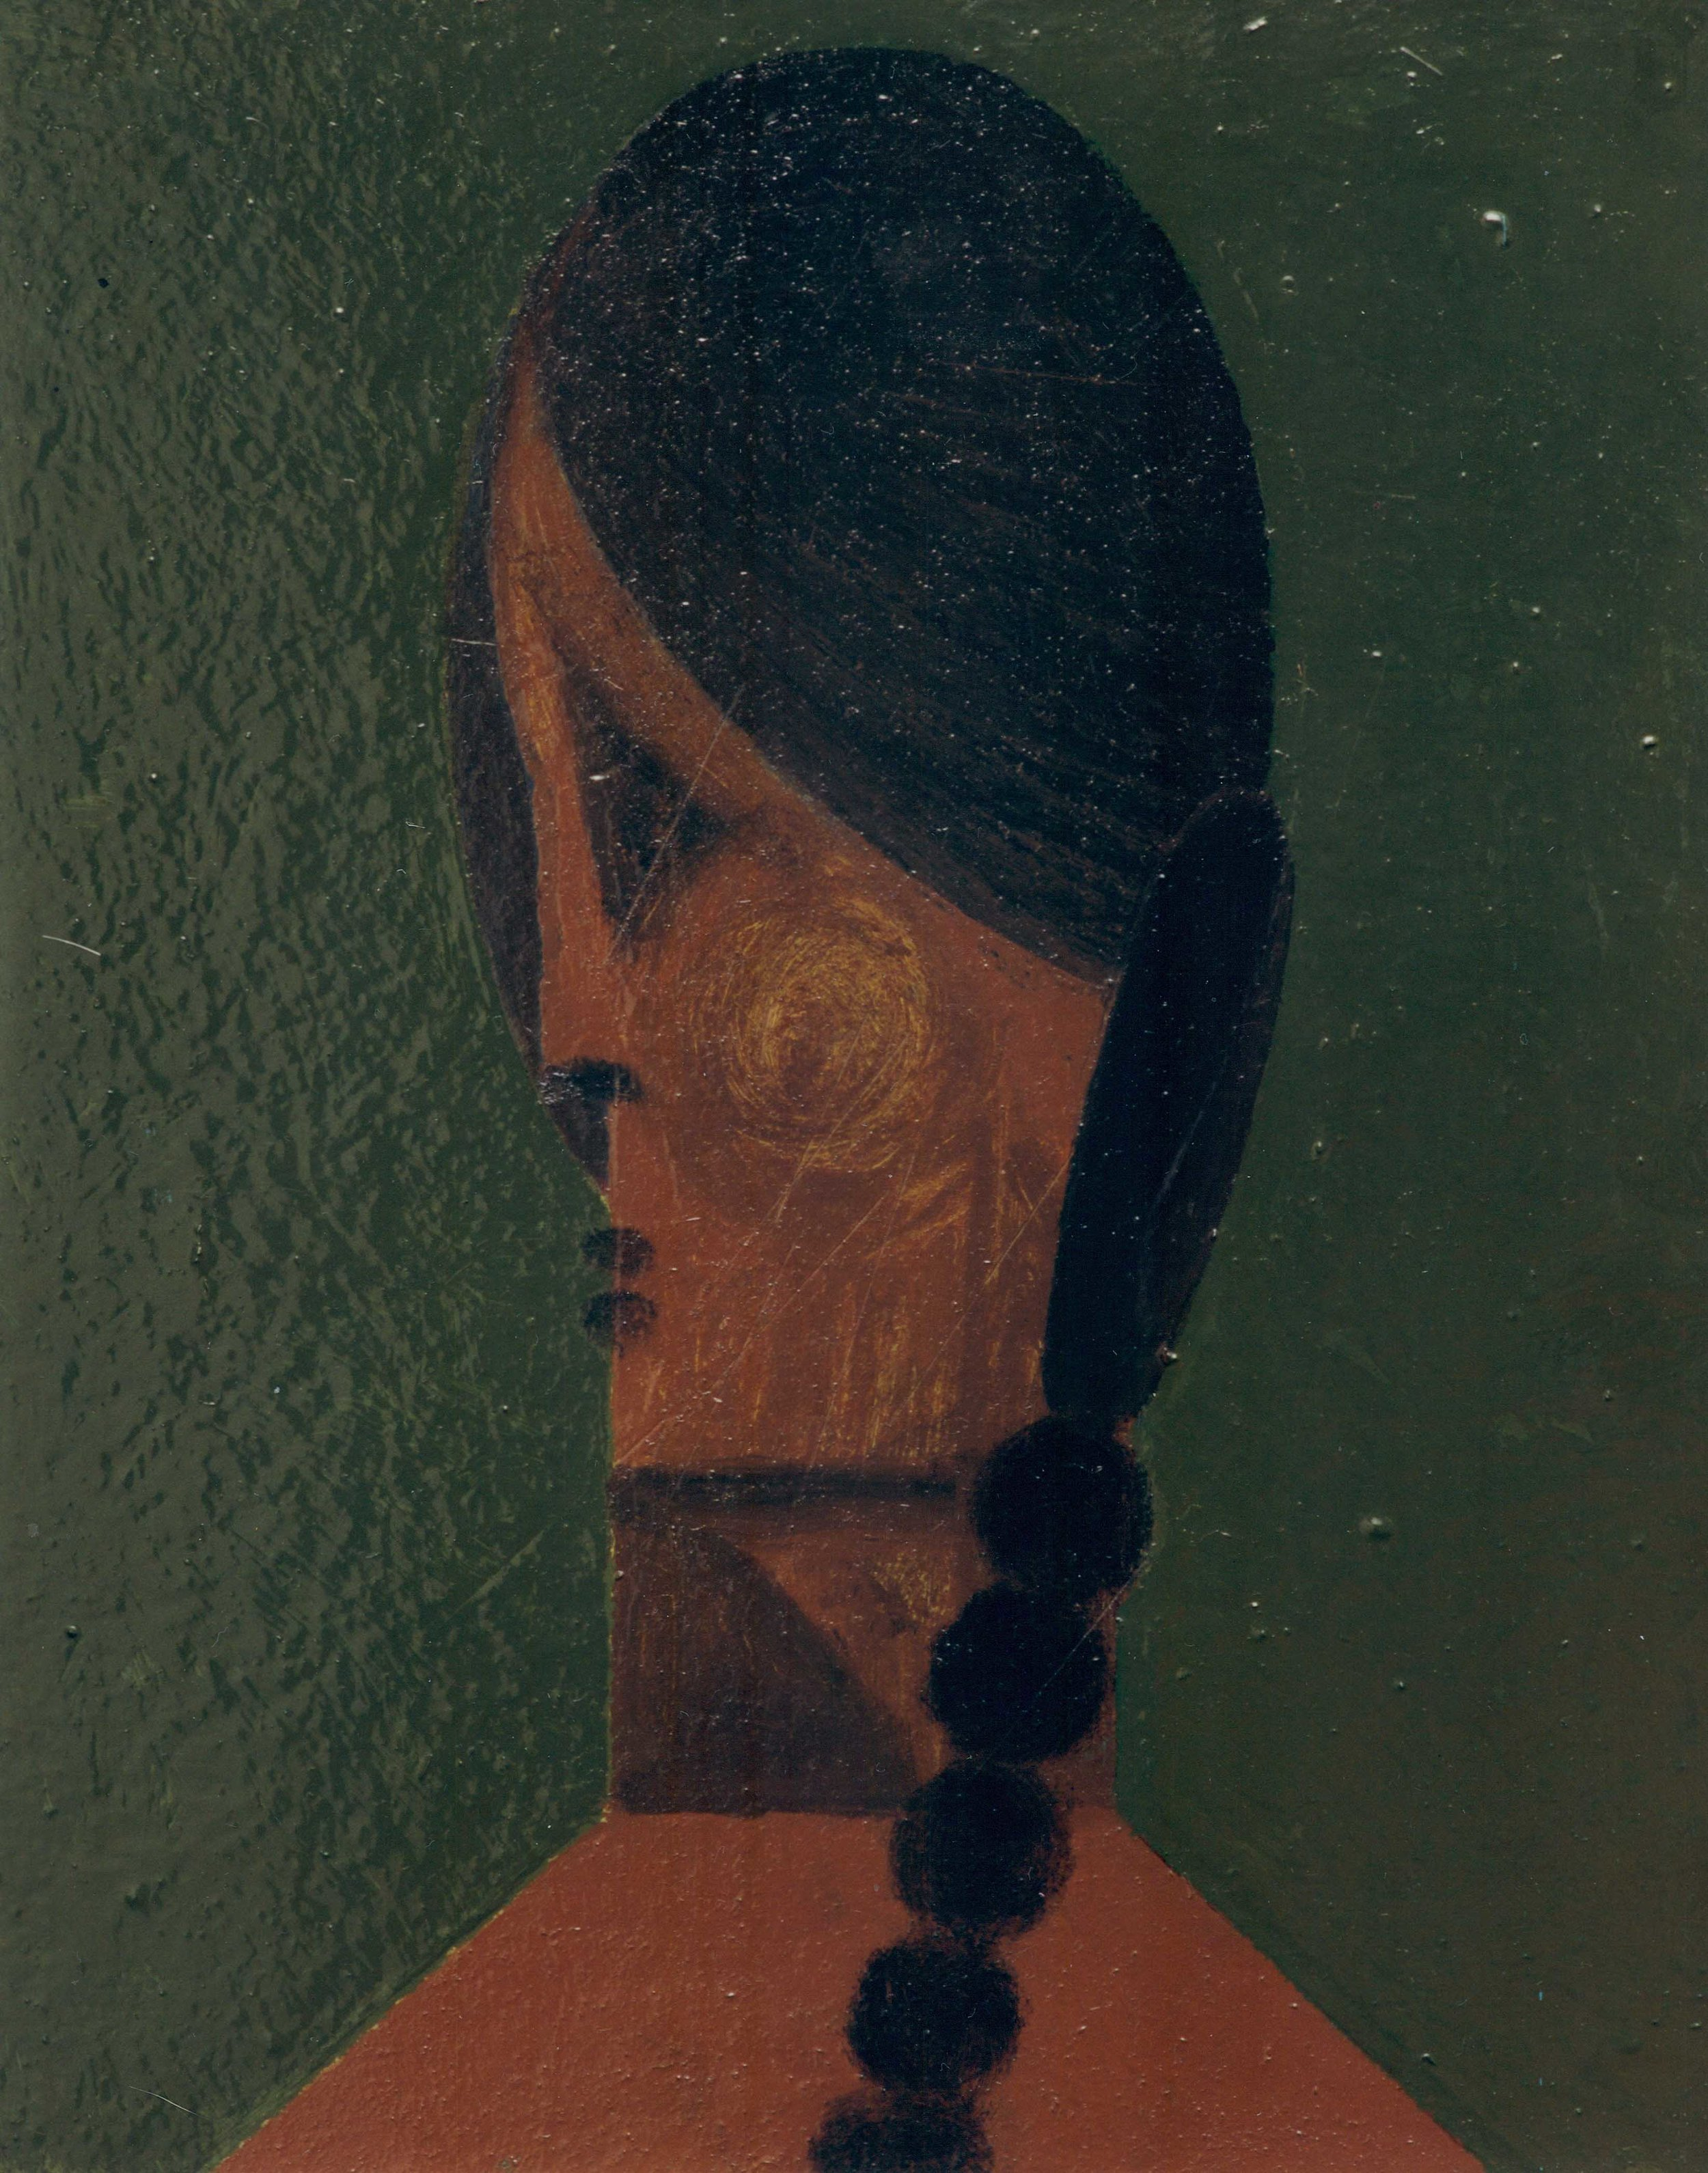 Head of girl